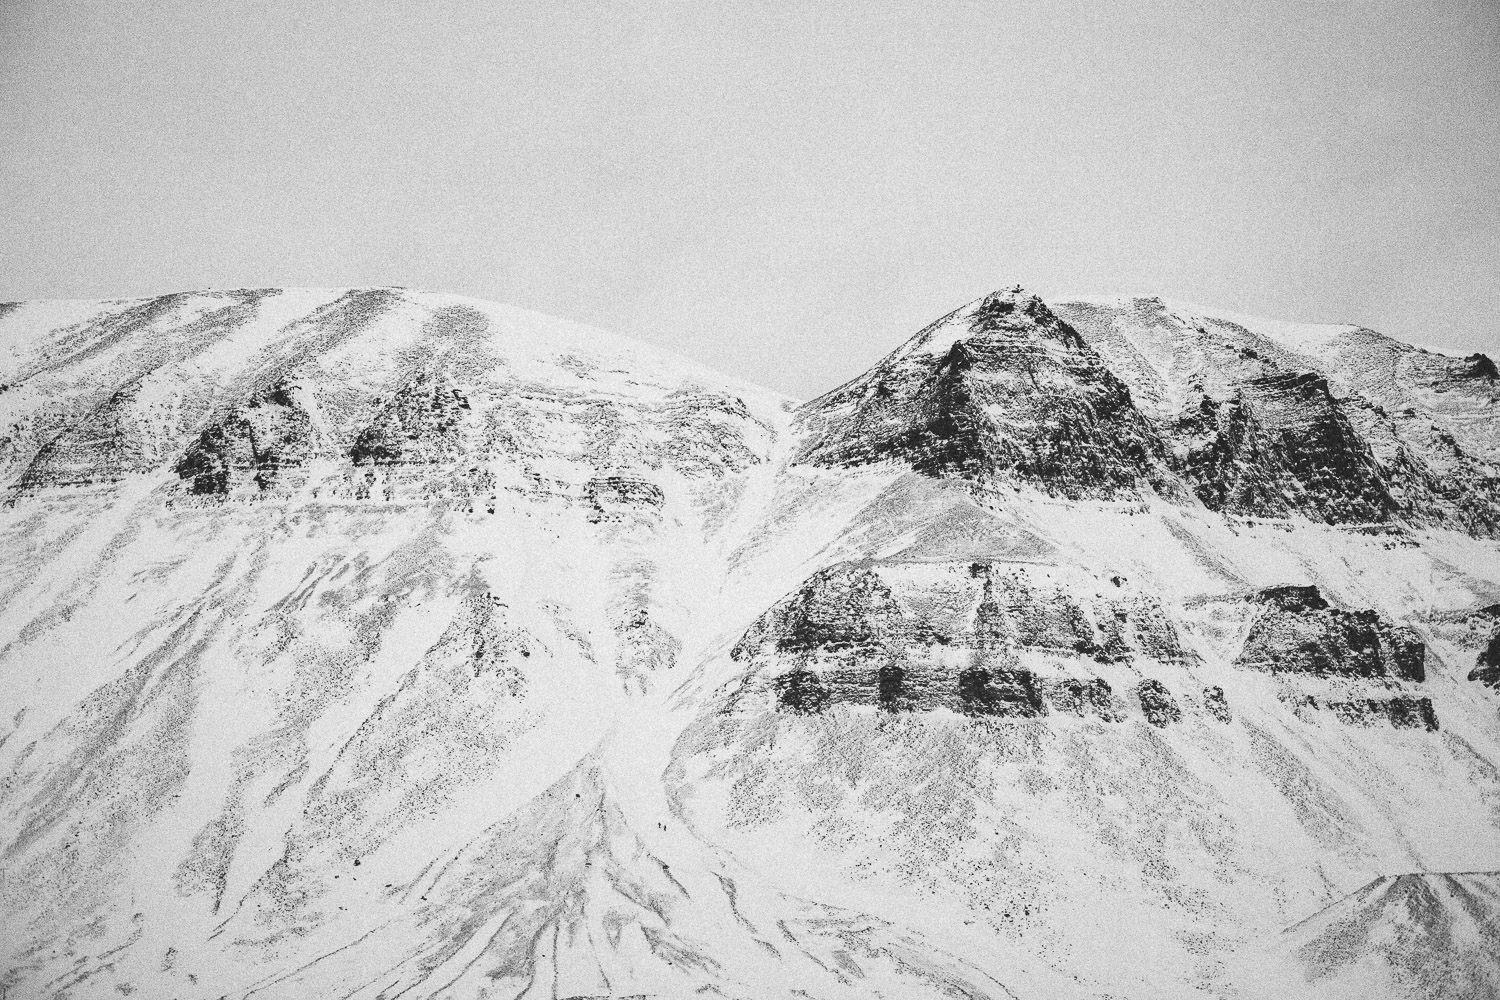 Svalbard by Kasper Nybo - click to see full series...